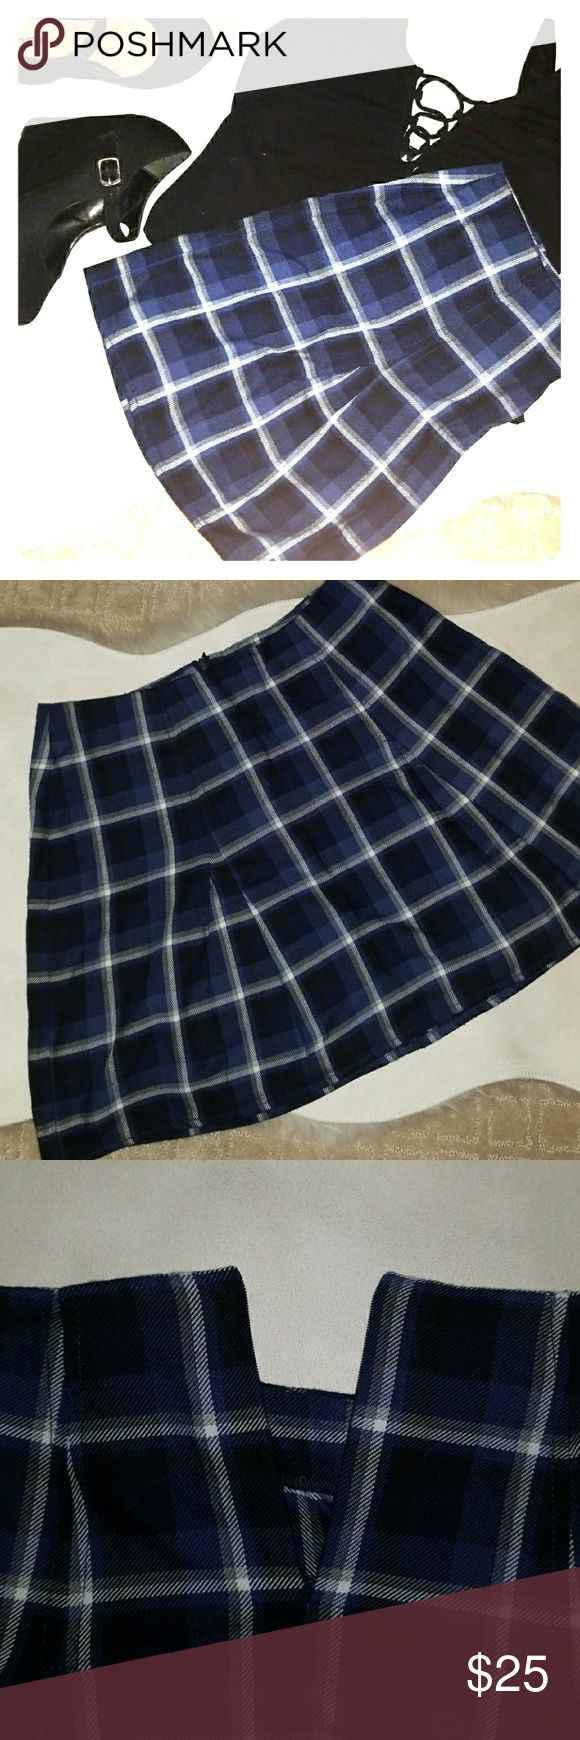 Plaid Mini Skirt Blue, black, white and grey plaid skirt. Pleats wrap around the dress to give some extra movement. Made to rest at the waist line. Bought at Aeropostale from the line Bethany Mota Aeropostale Skirts Mini